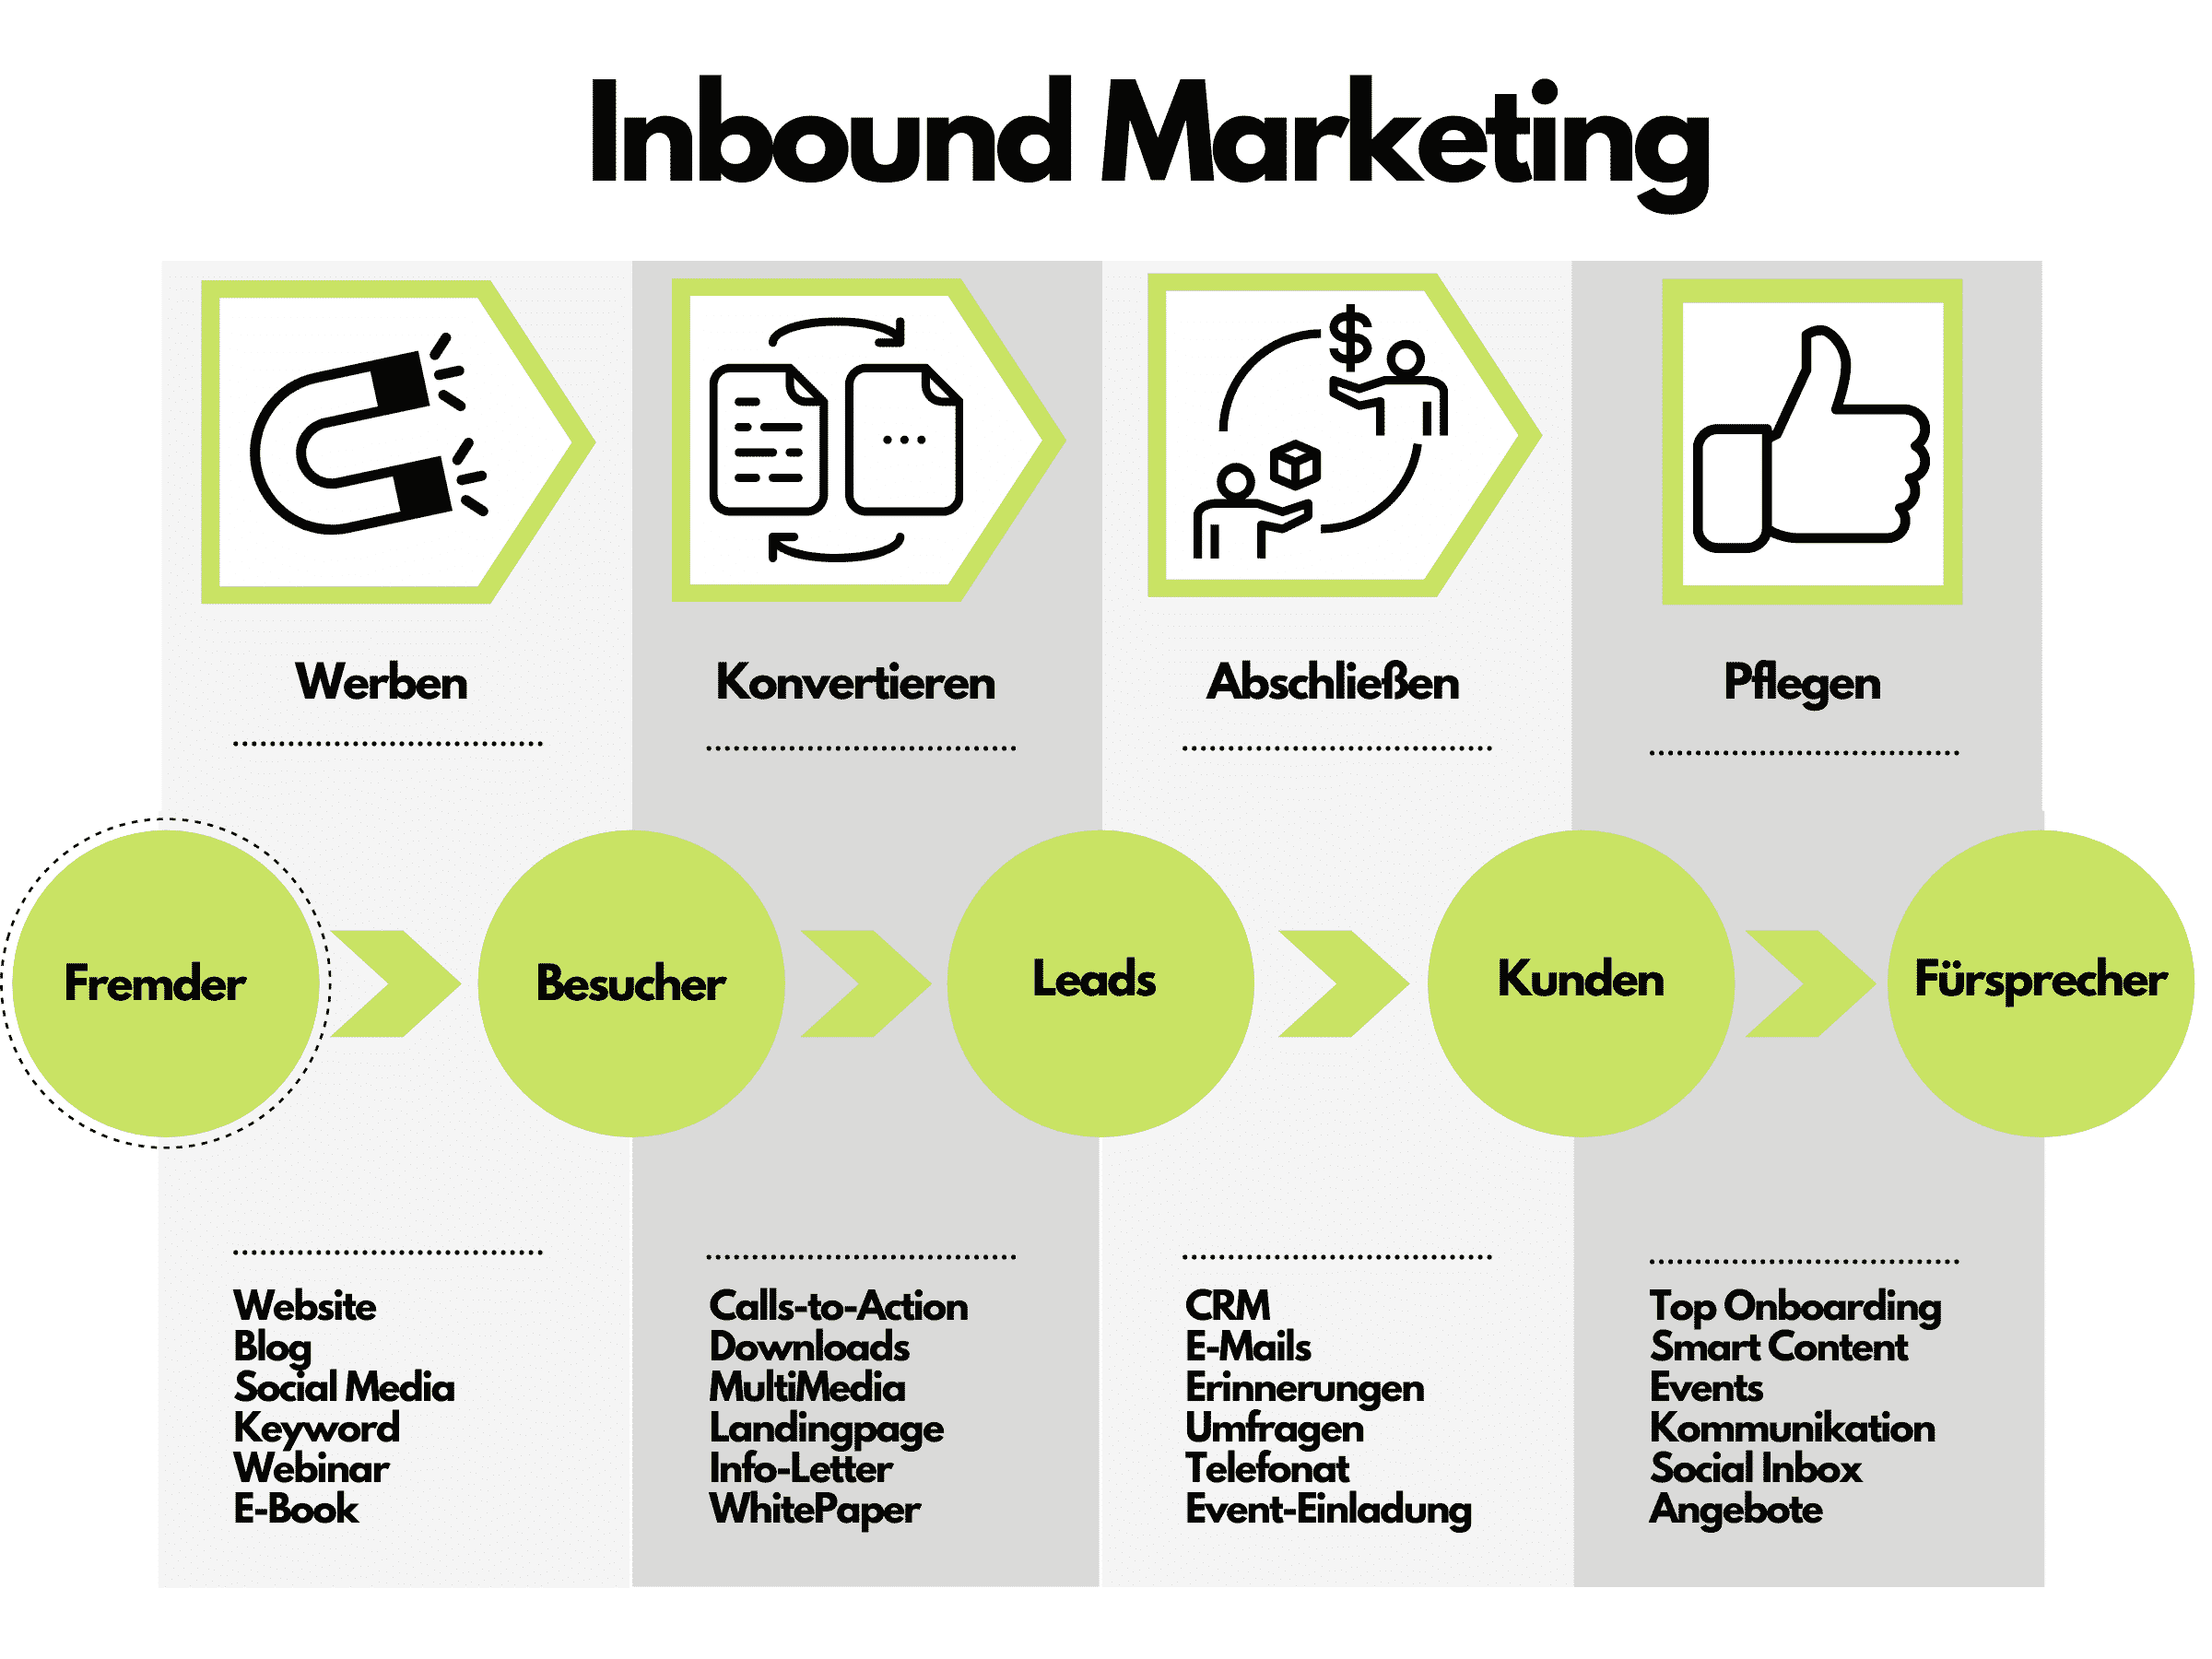 Inbound Marketing - Definition